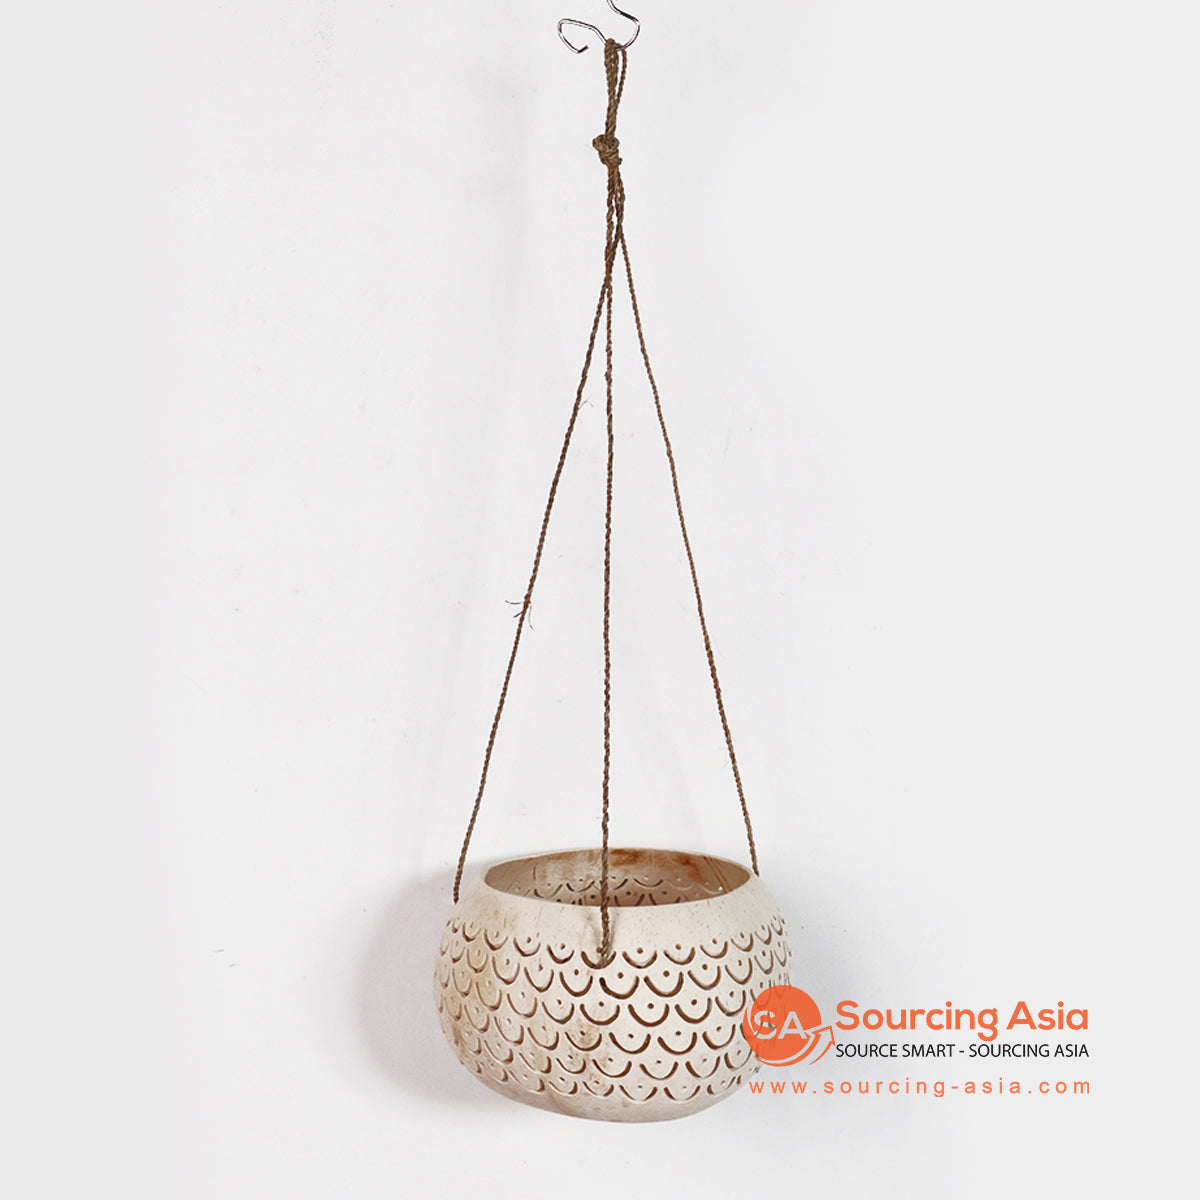 MULA001 COCONUT BOWL WITH HANGING